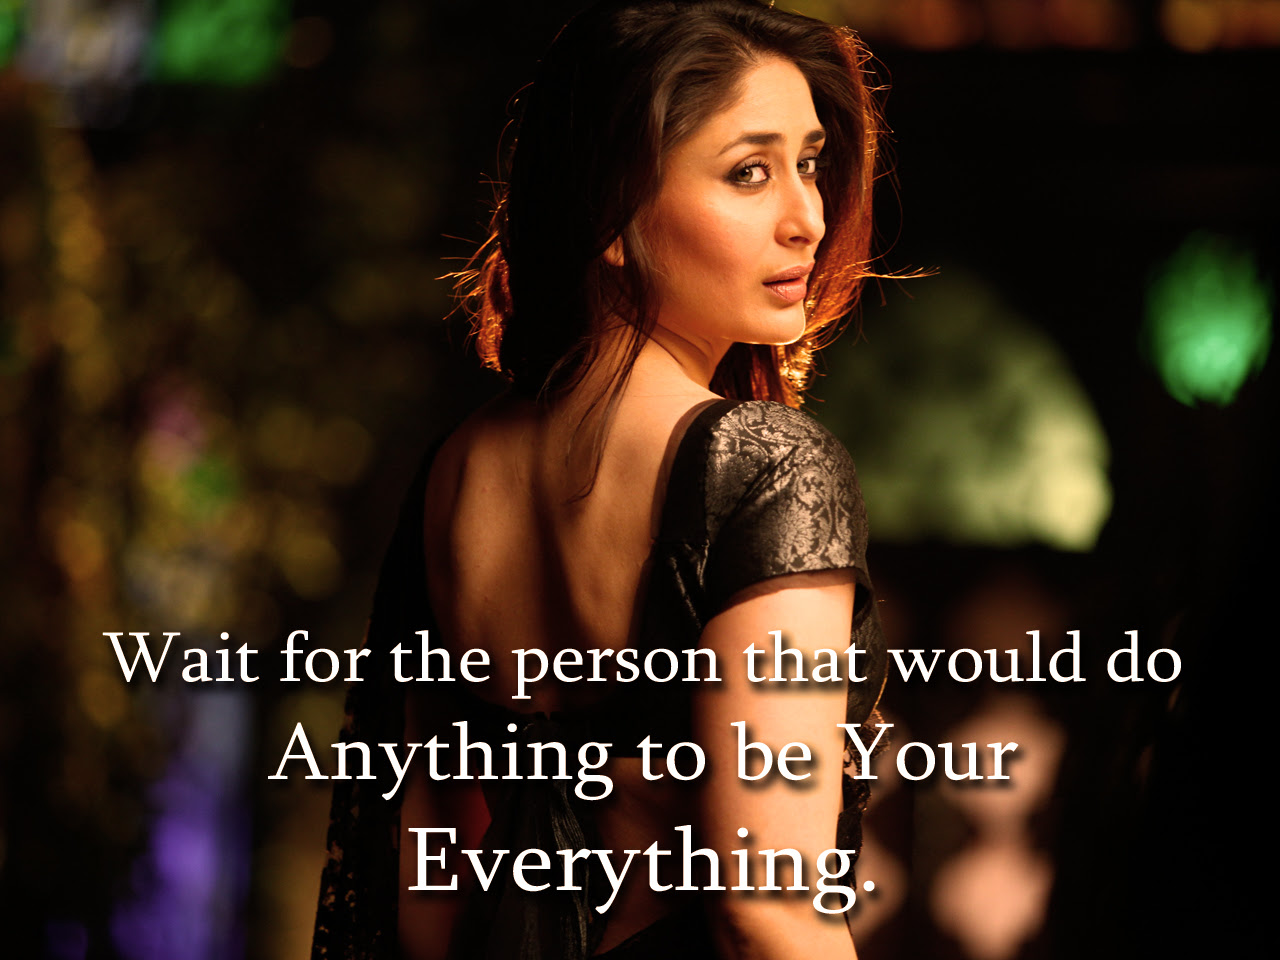 35 Song Quotes Bollywood Images Newsstandnyc Unlimited Quotes Today New hindi songs mp3 2020, best hindi movie songs lyrics, bollywood movie playlist 2020, online latest new songs hindi lyrics 2020, hindi single tracks, new hindi sad songs breakup mp3. 35 song quotes bollywood images